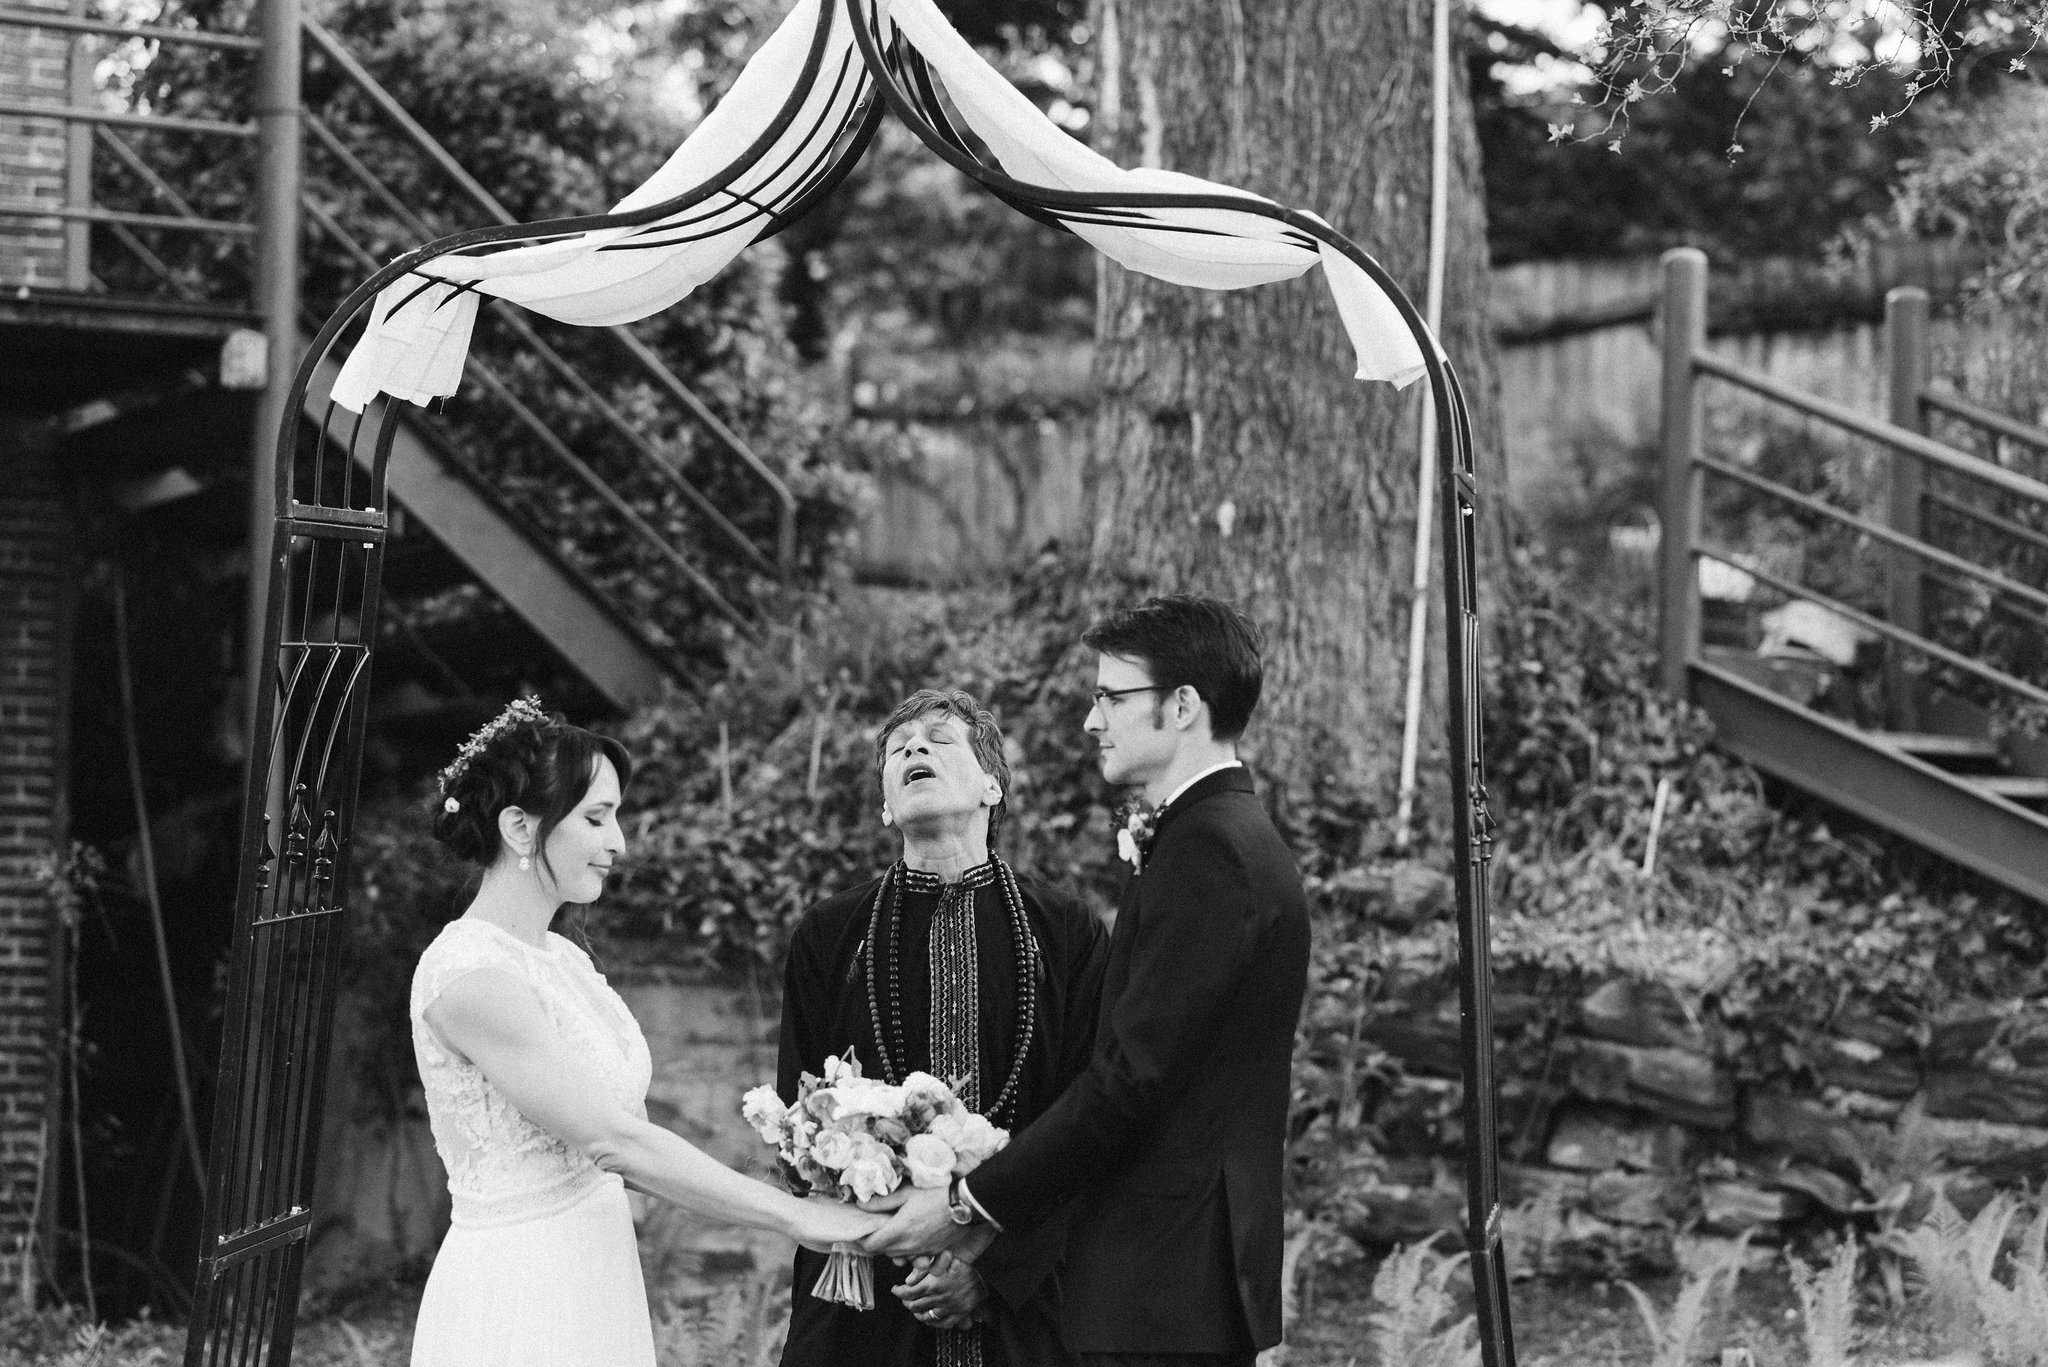 AllisonandDan'sWedding-290.jpg